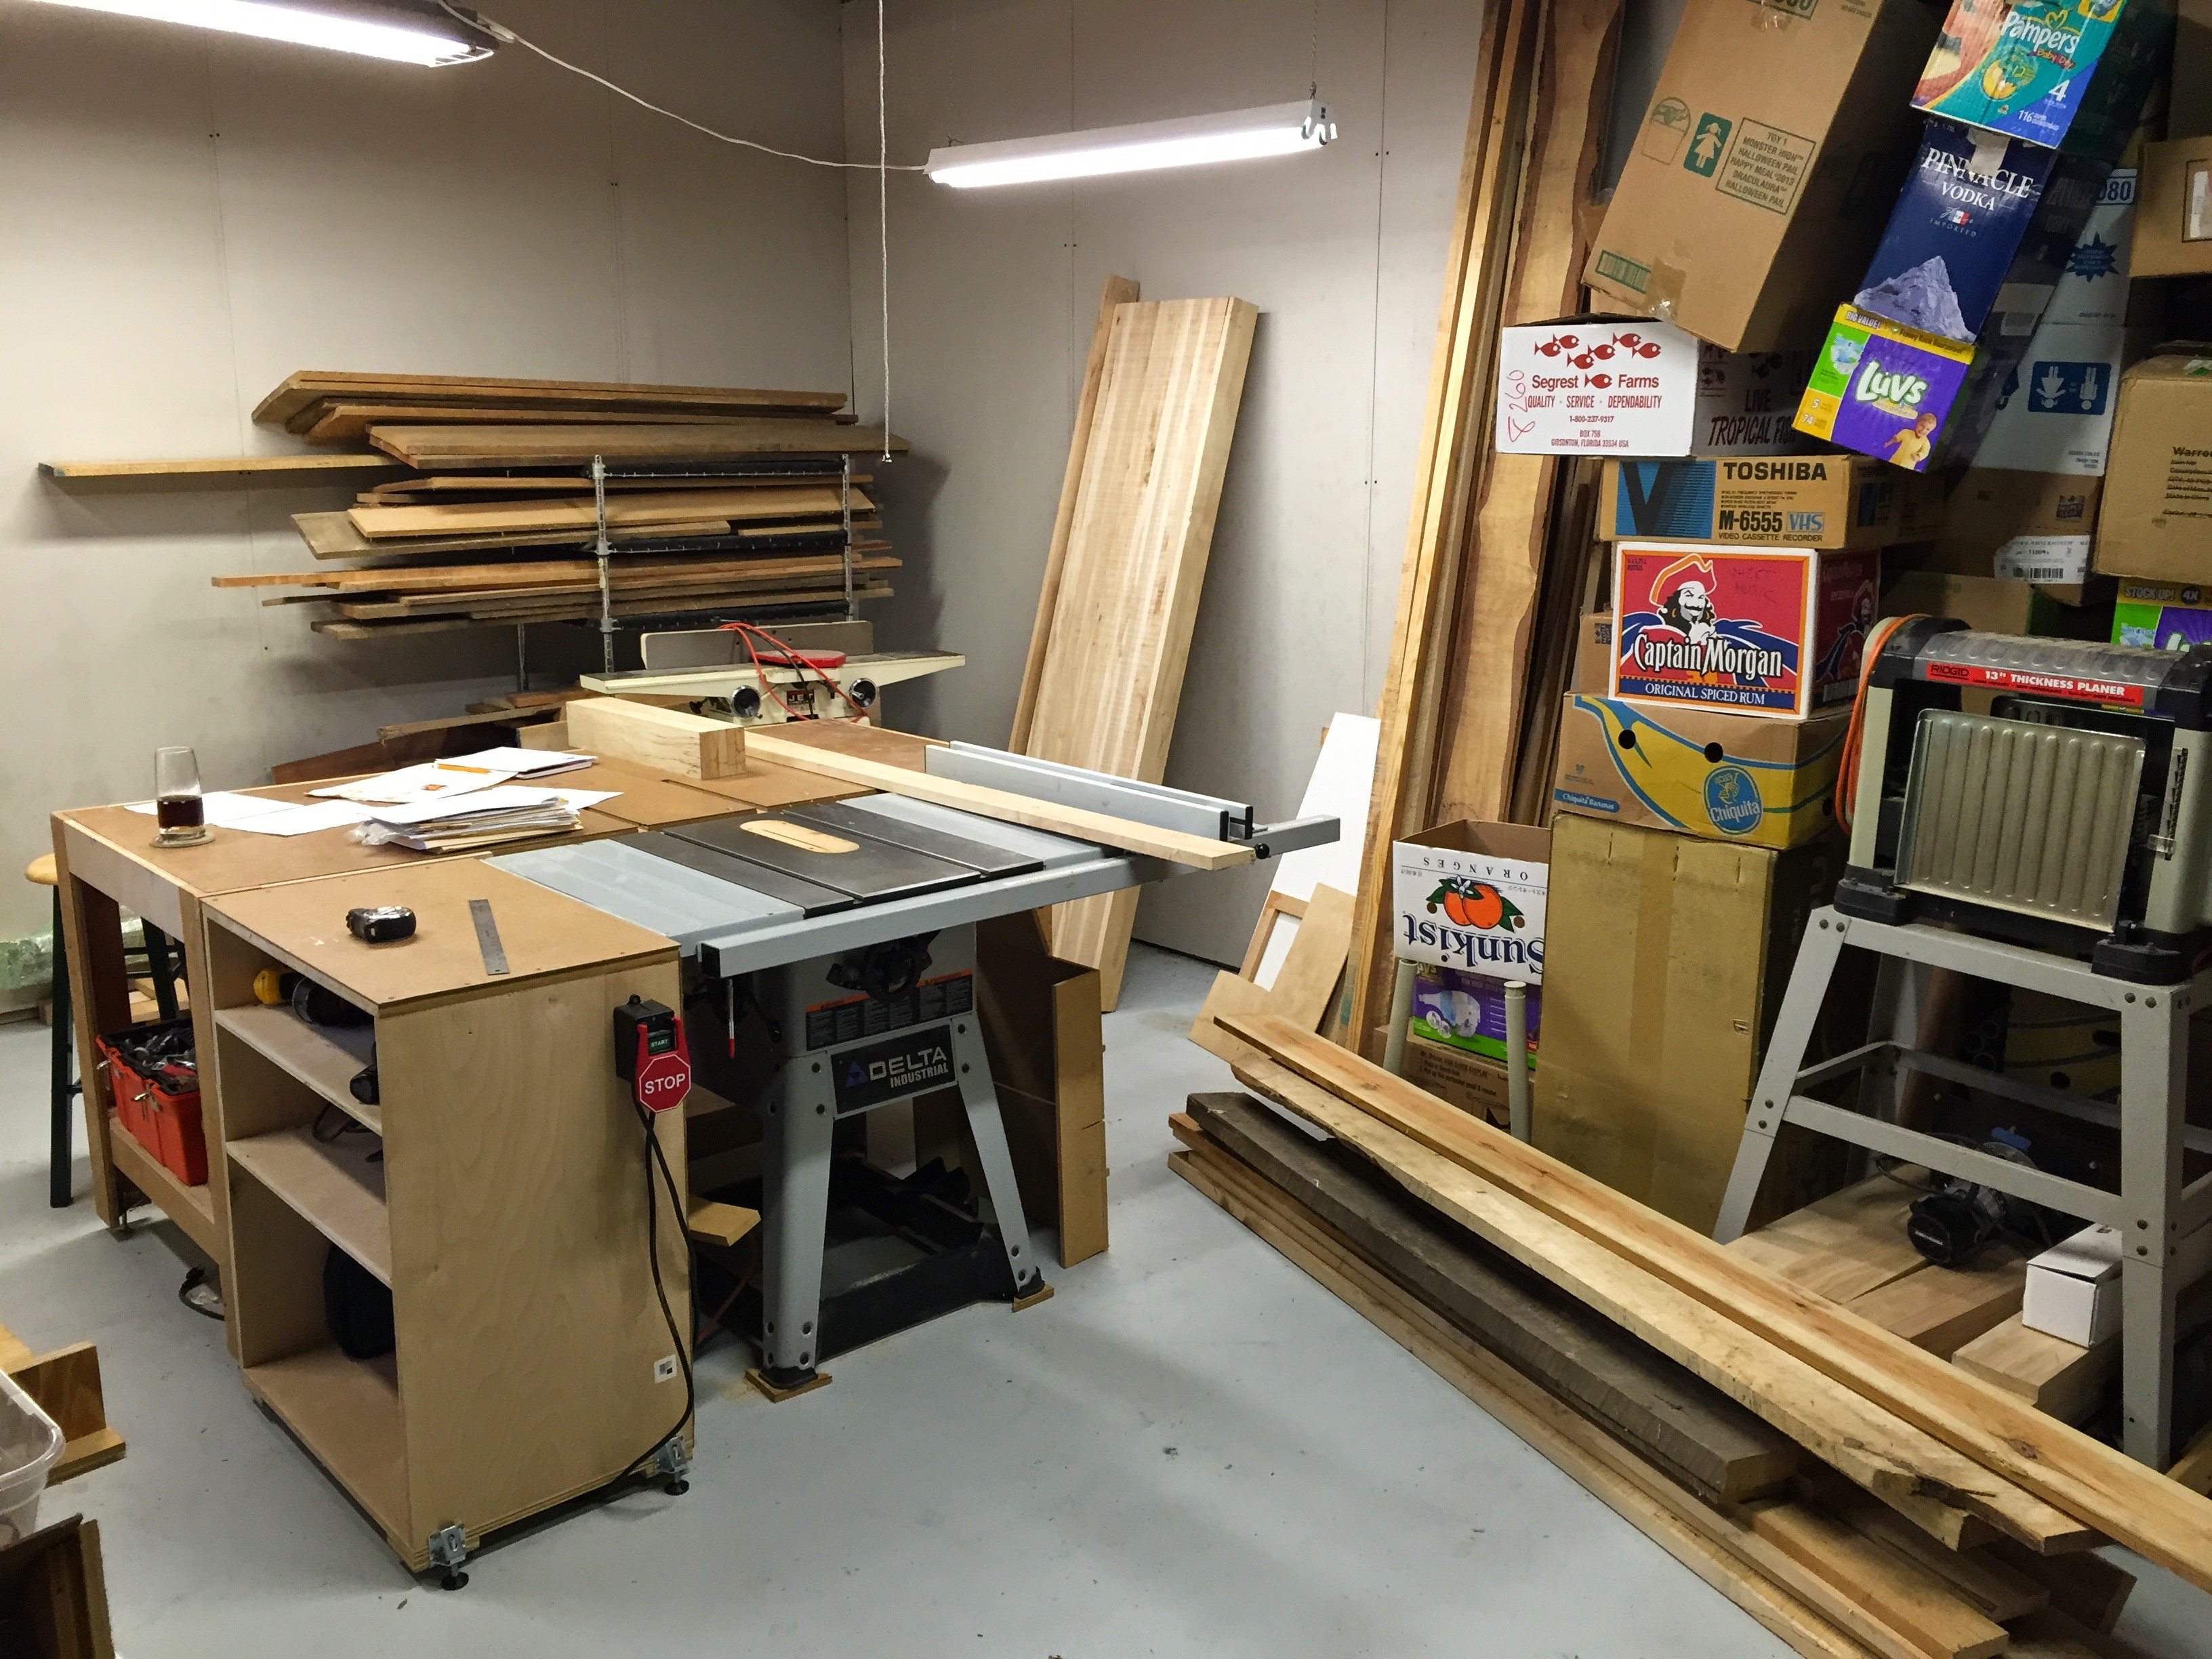 Table saw and tons of stored boxes for the next move